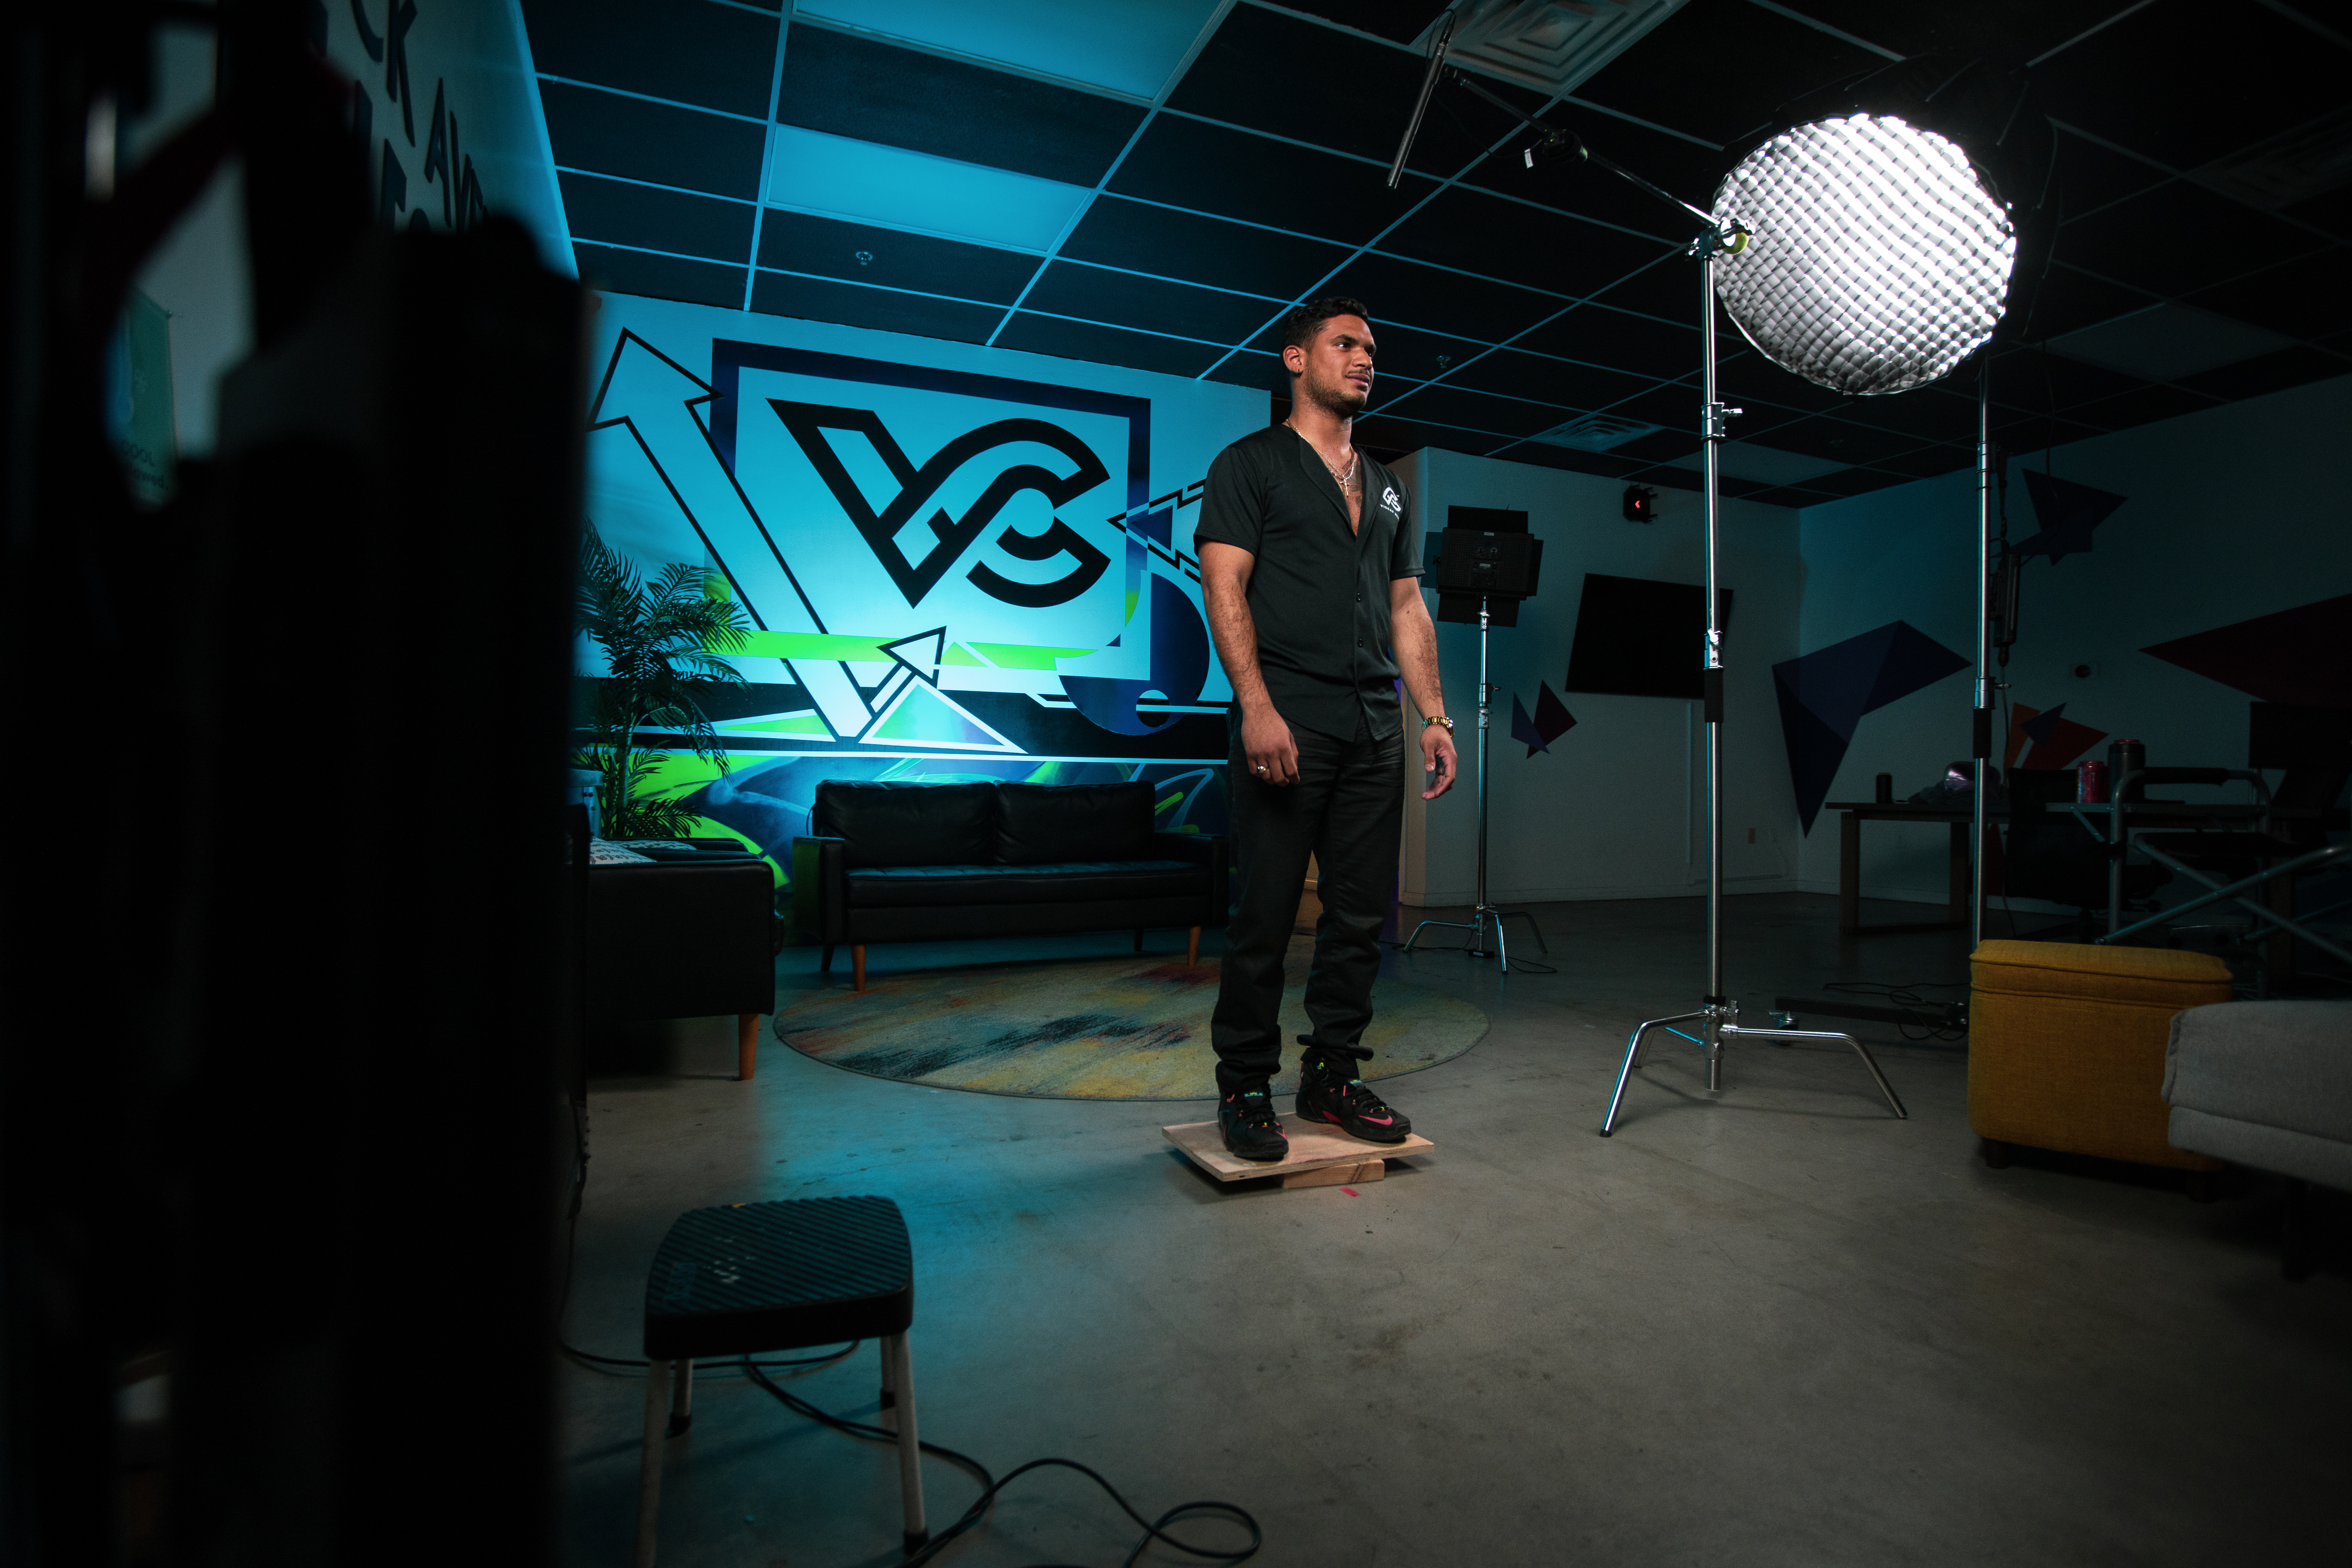 Man standing on a stage against a blue and green Viscap Media logo